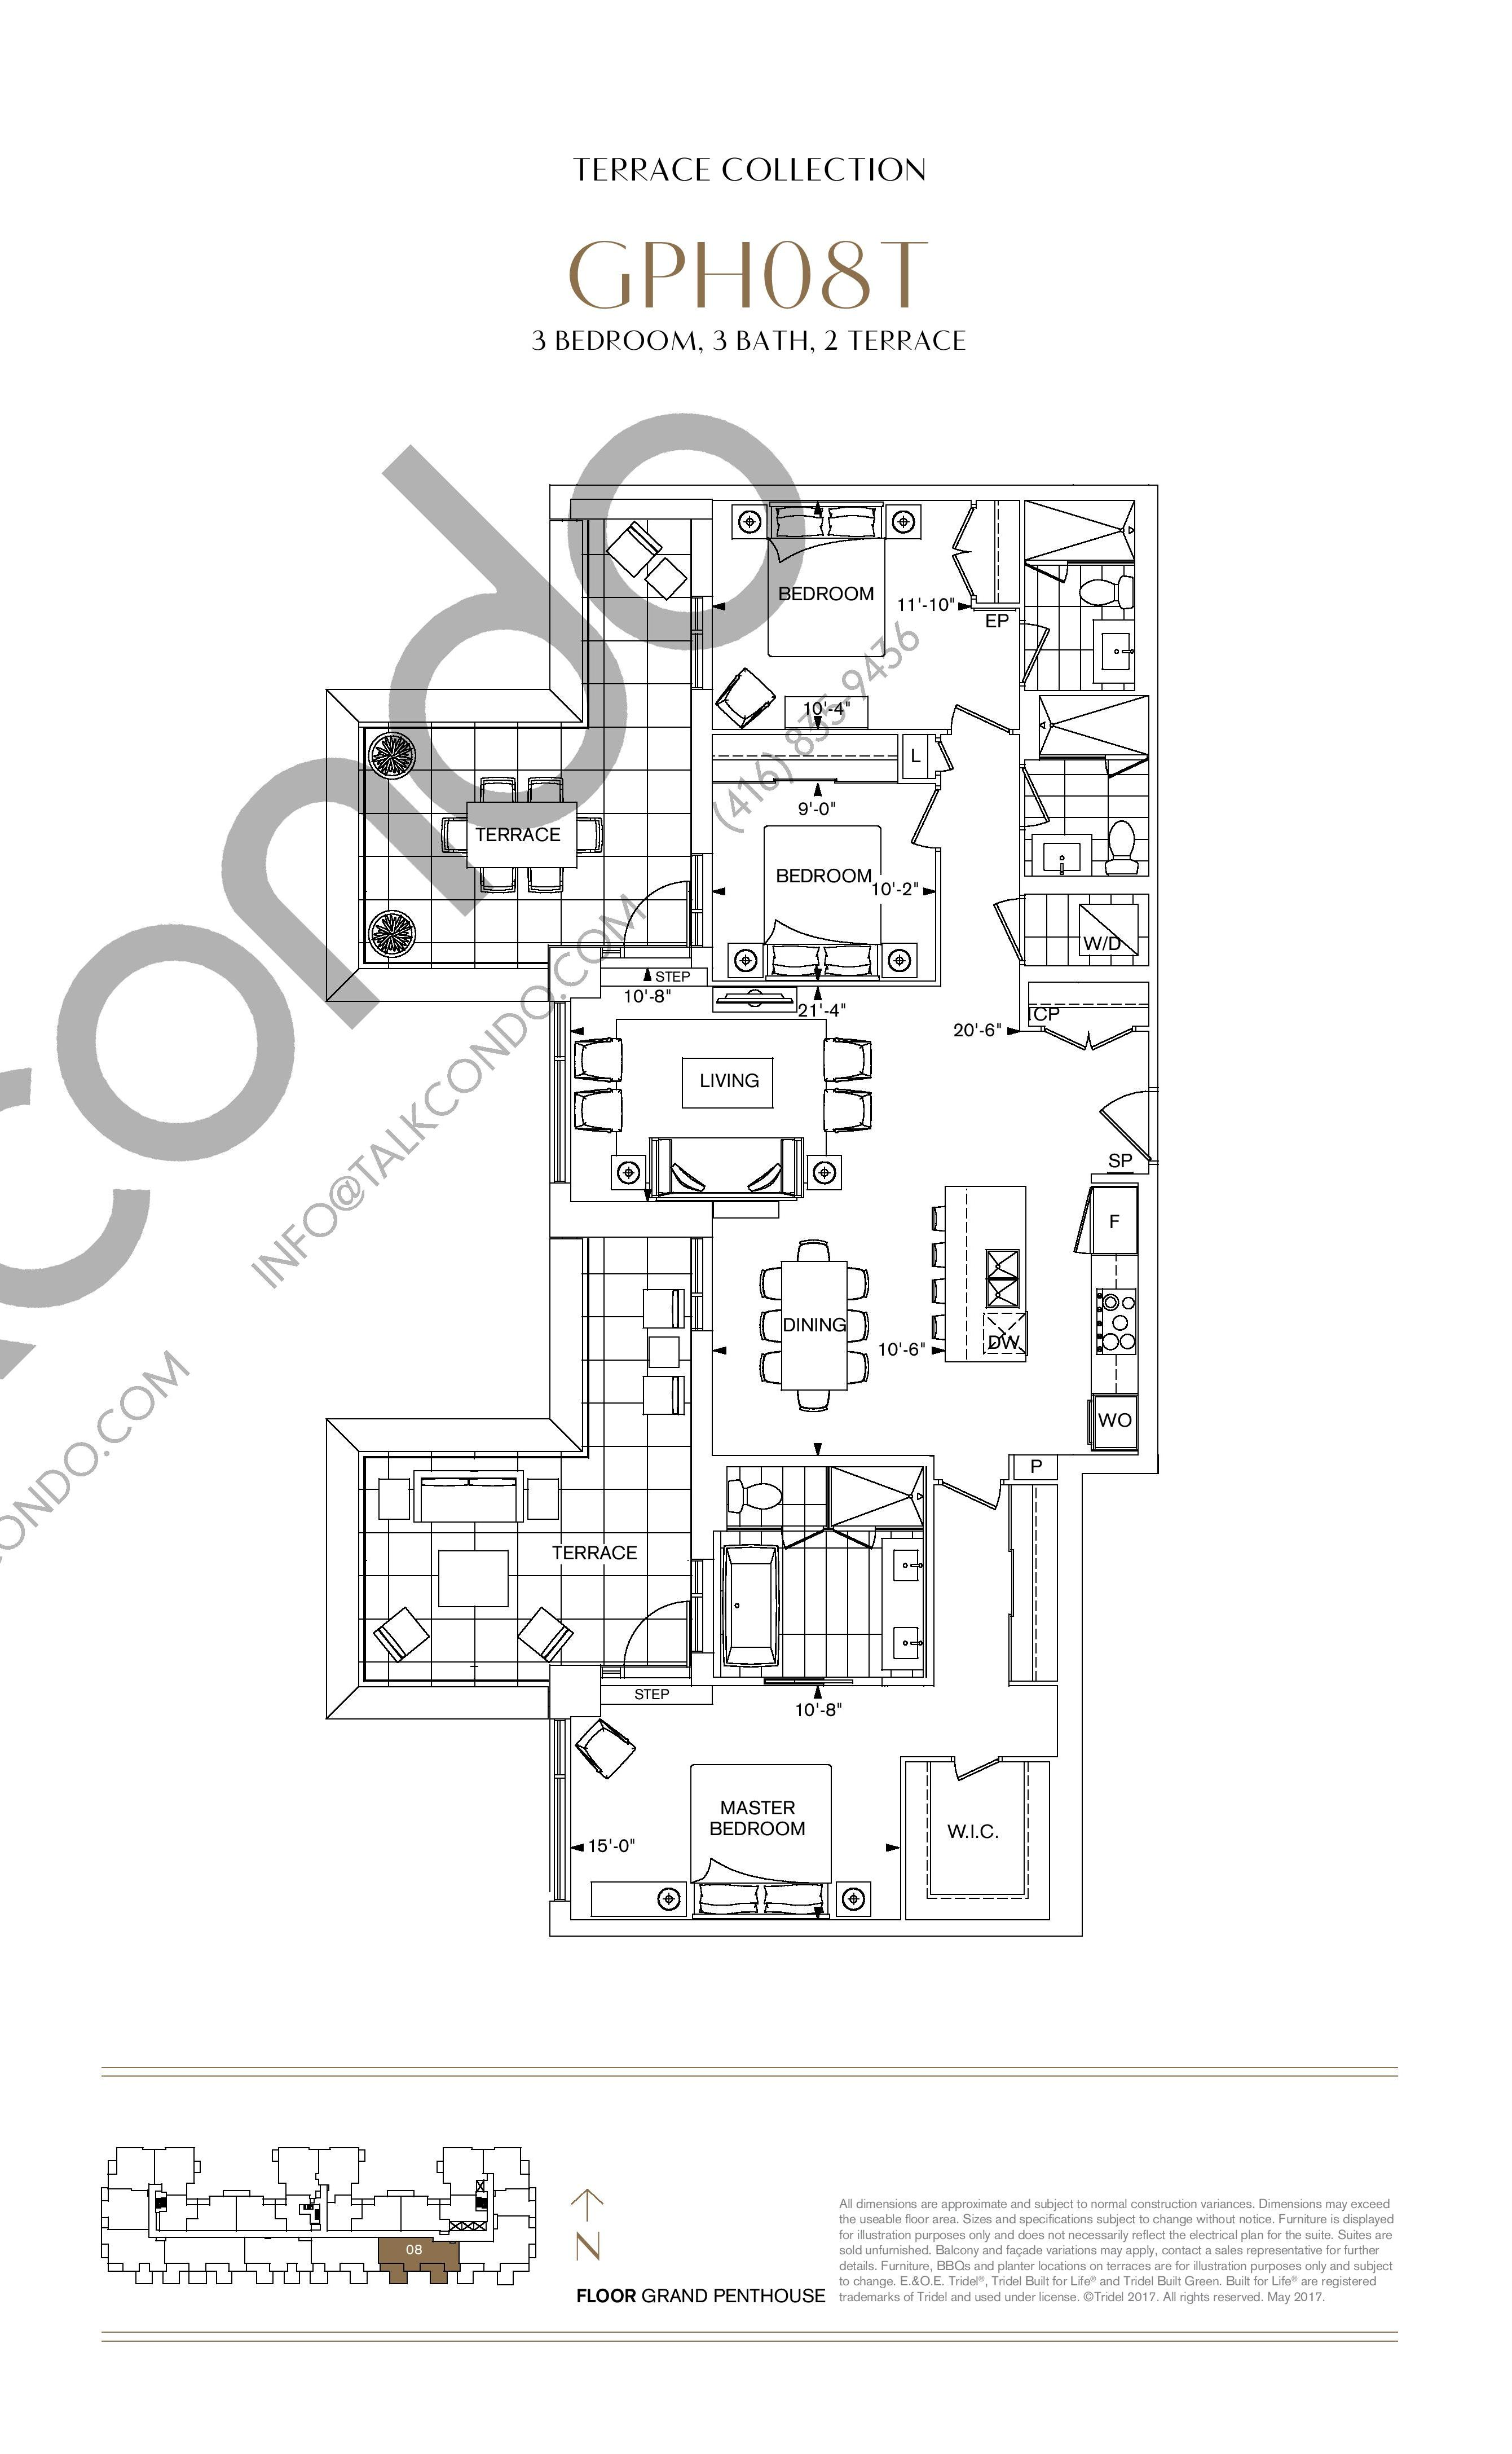 GPH08T Floor Plan at Bianca Condos - 1486 sq.ft